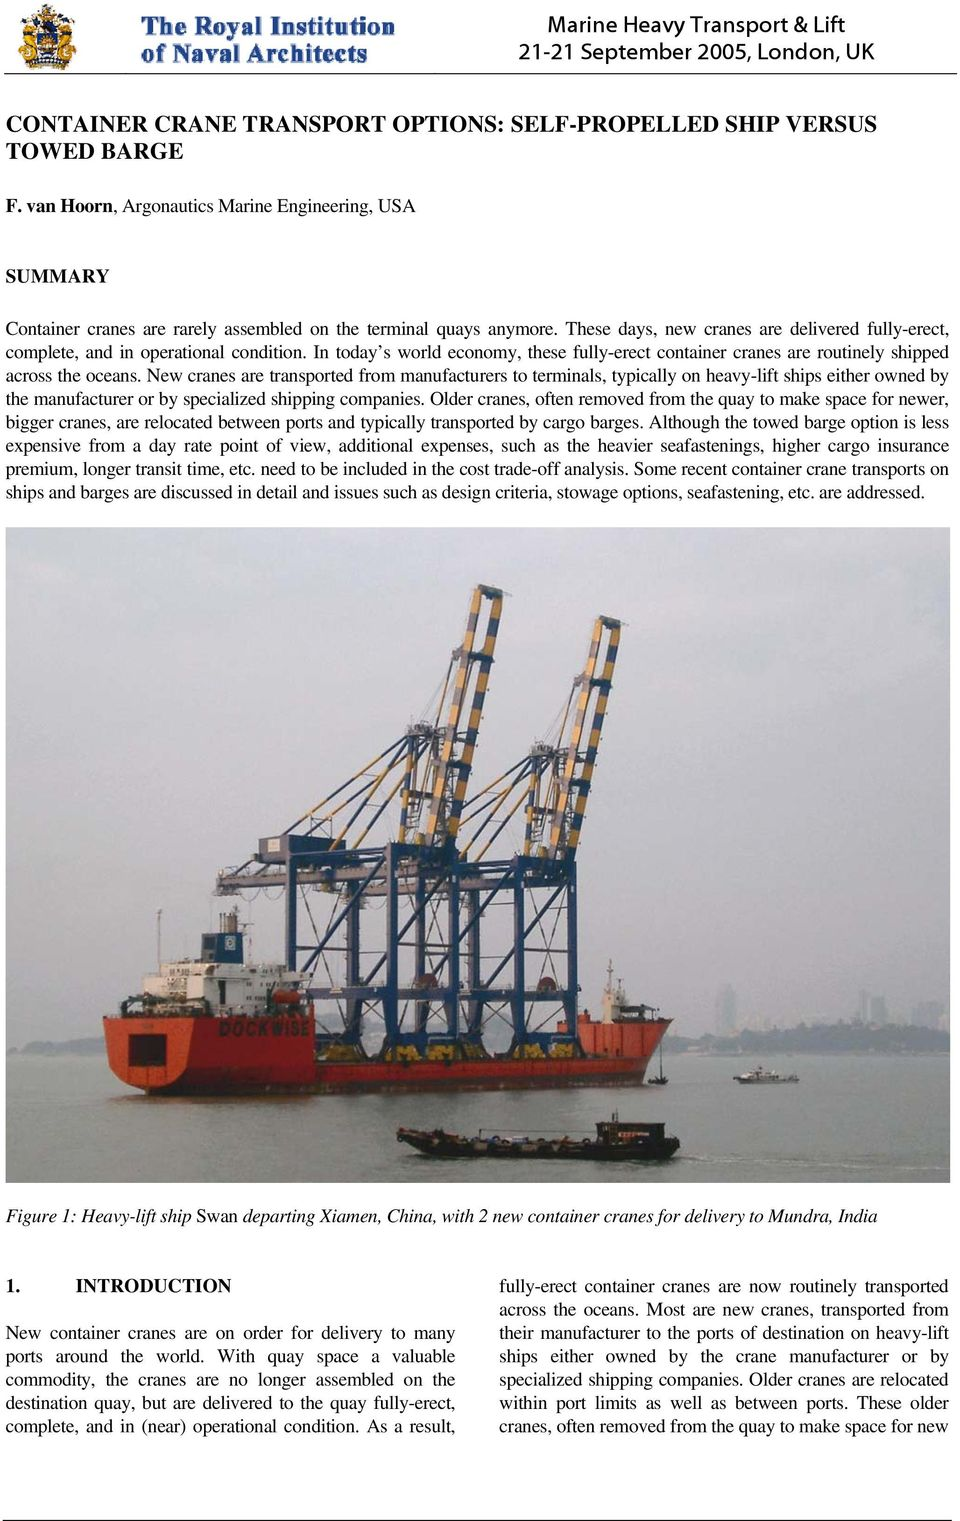 CONTAINER CRANE TRANSPORT OPTIONS: SELF-PROPELLED SHIP